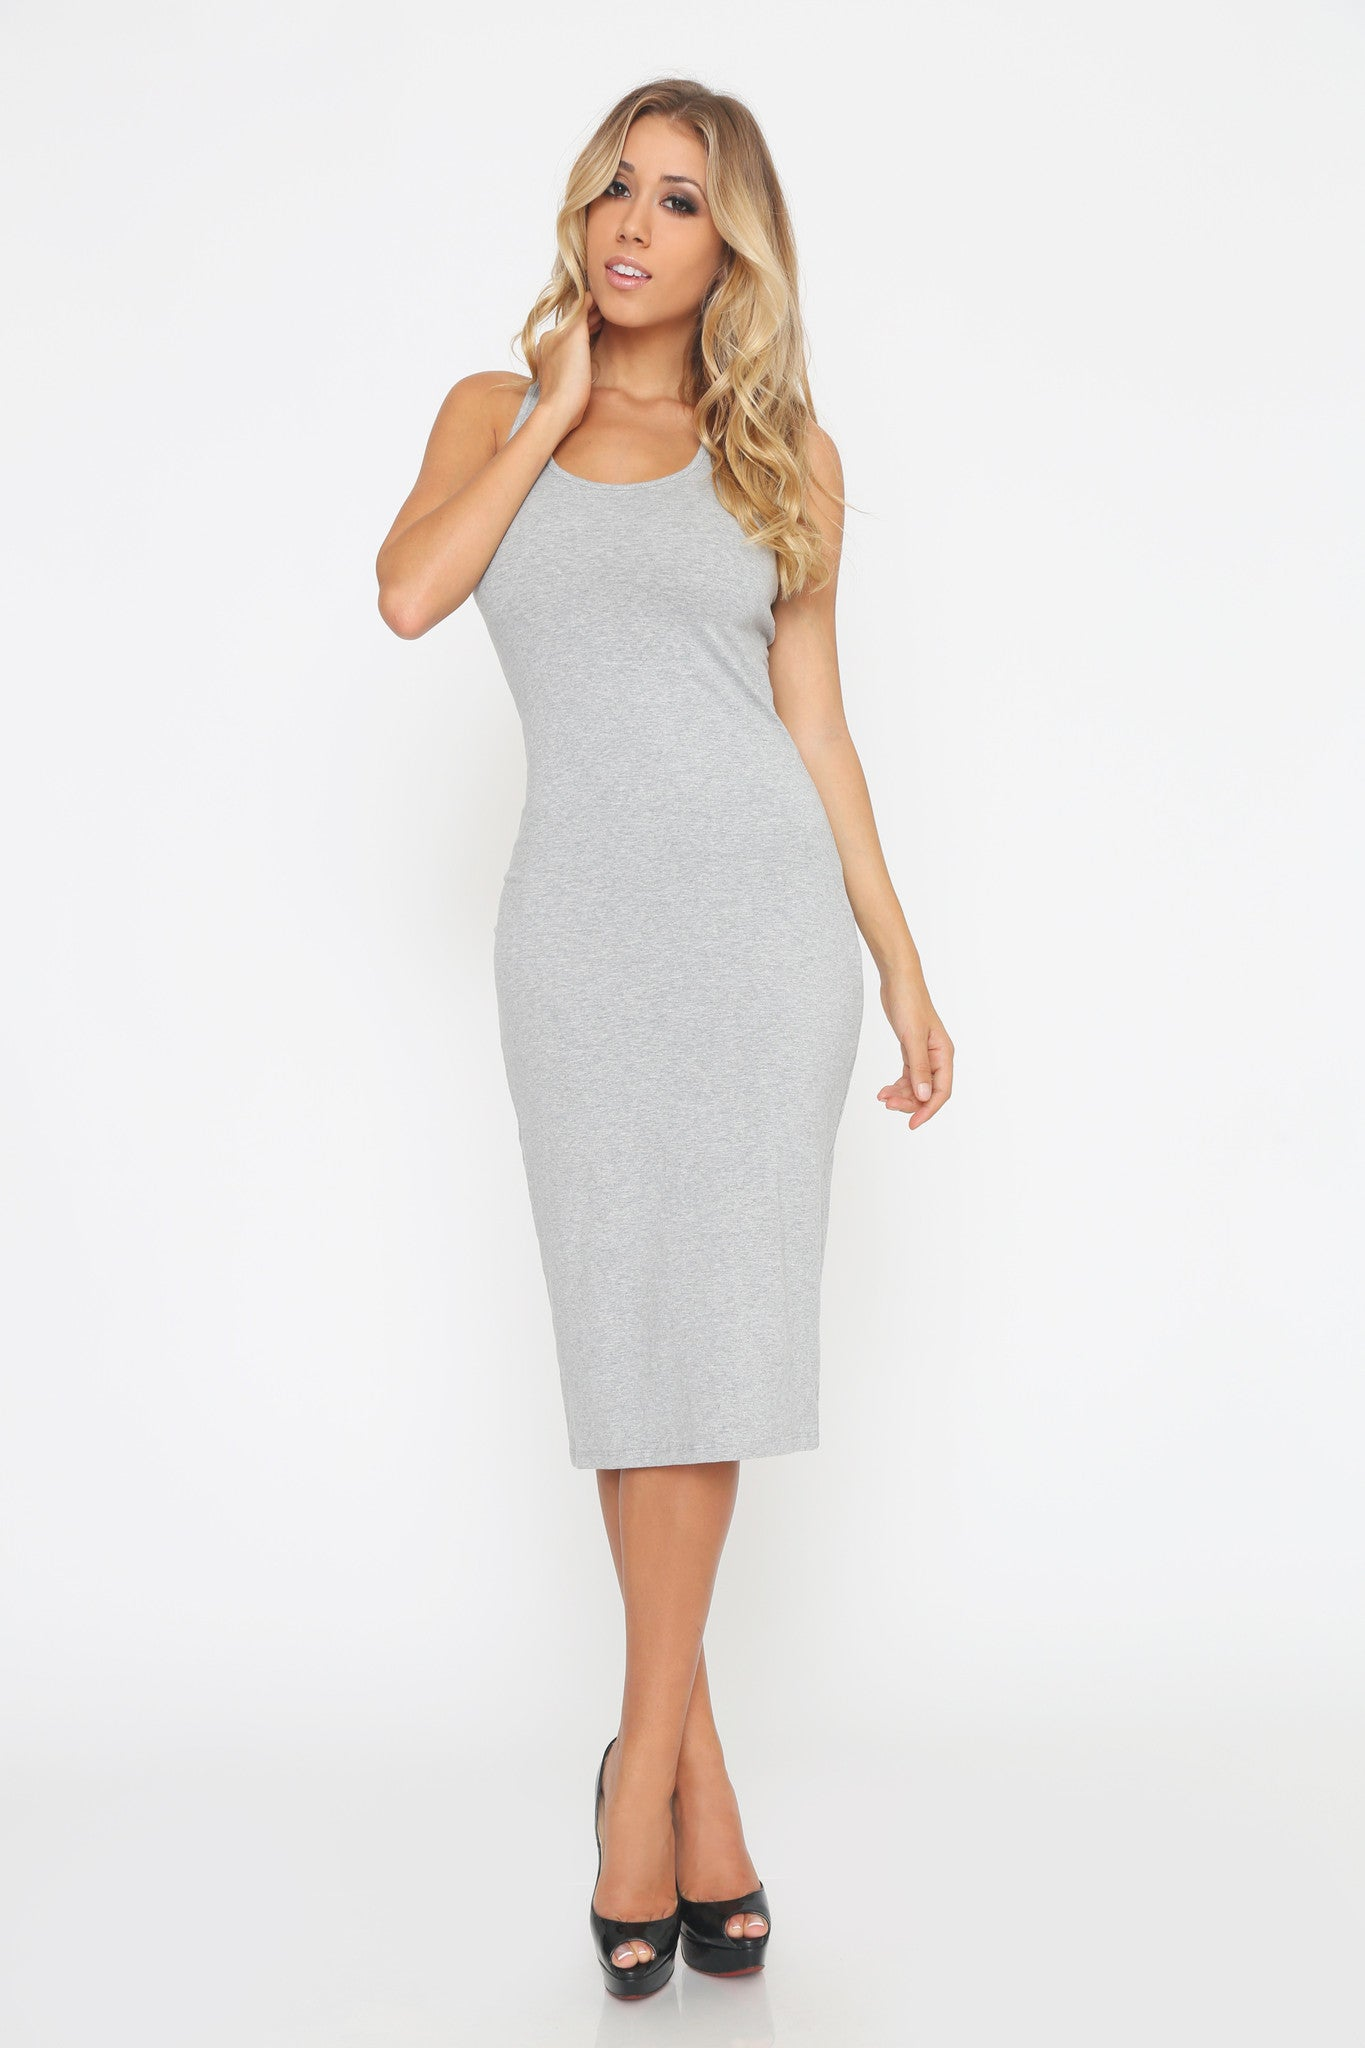 SHERIDAN DRESS - Glam Envy - 1